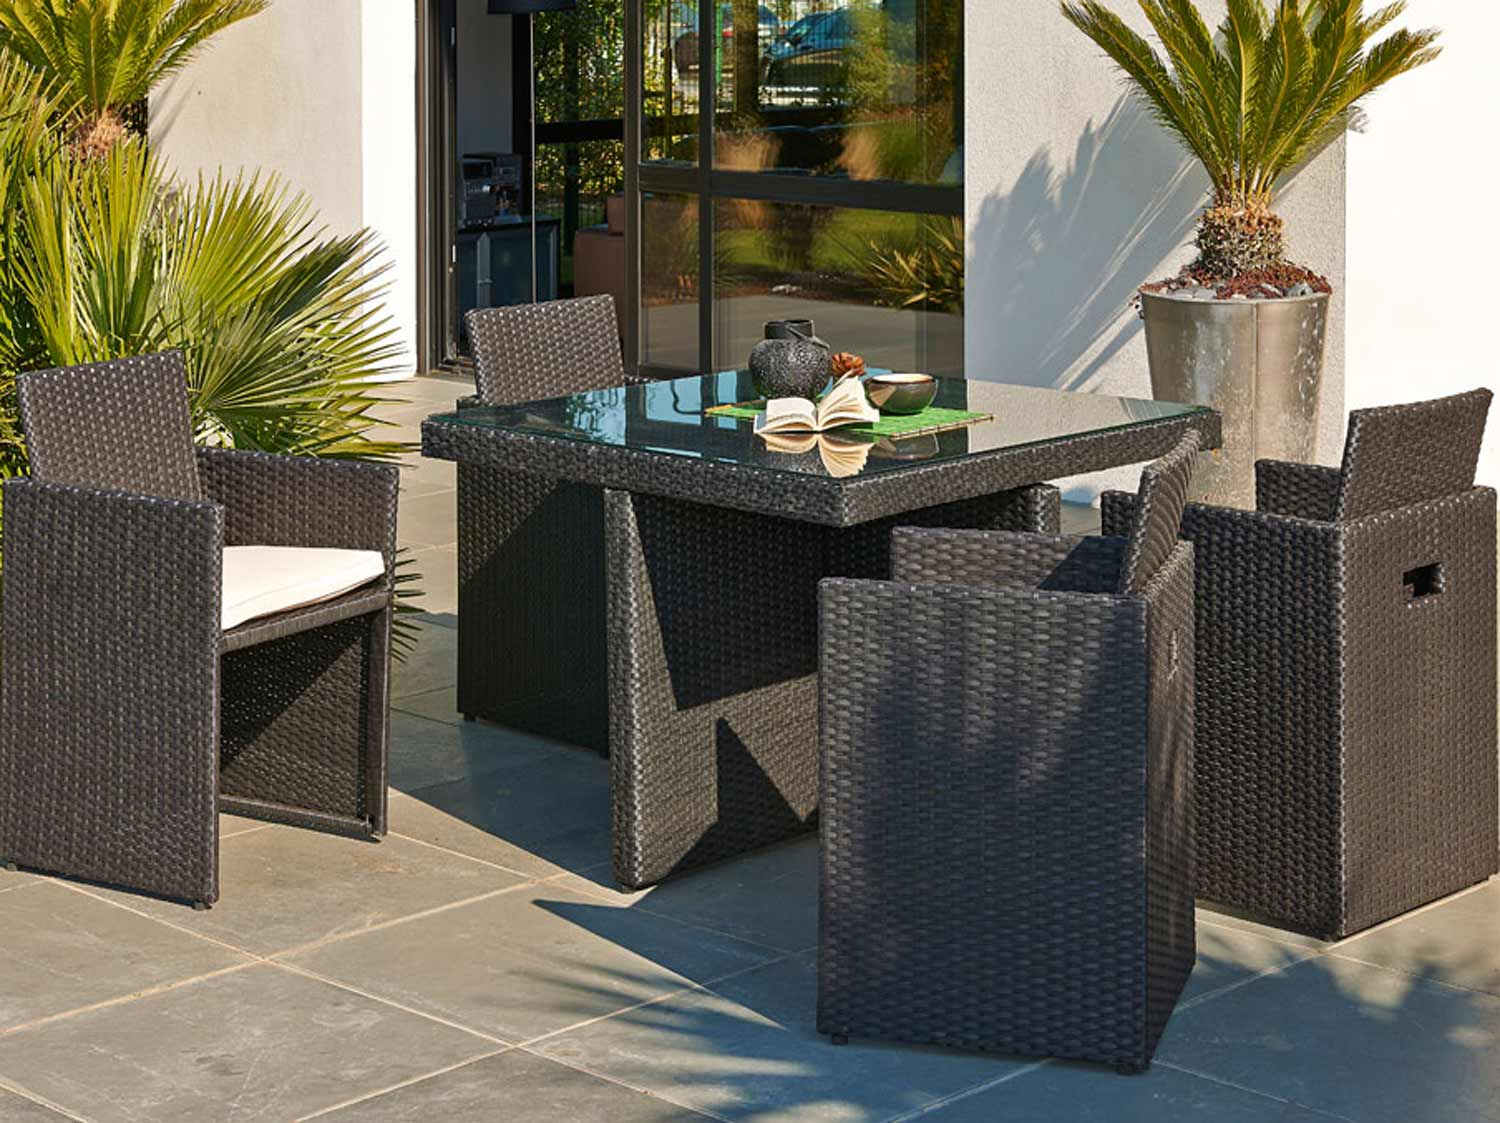 Salon de jardin table et chaise mobilier de jardin leroy merlin for Meubles de terrasse design